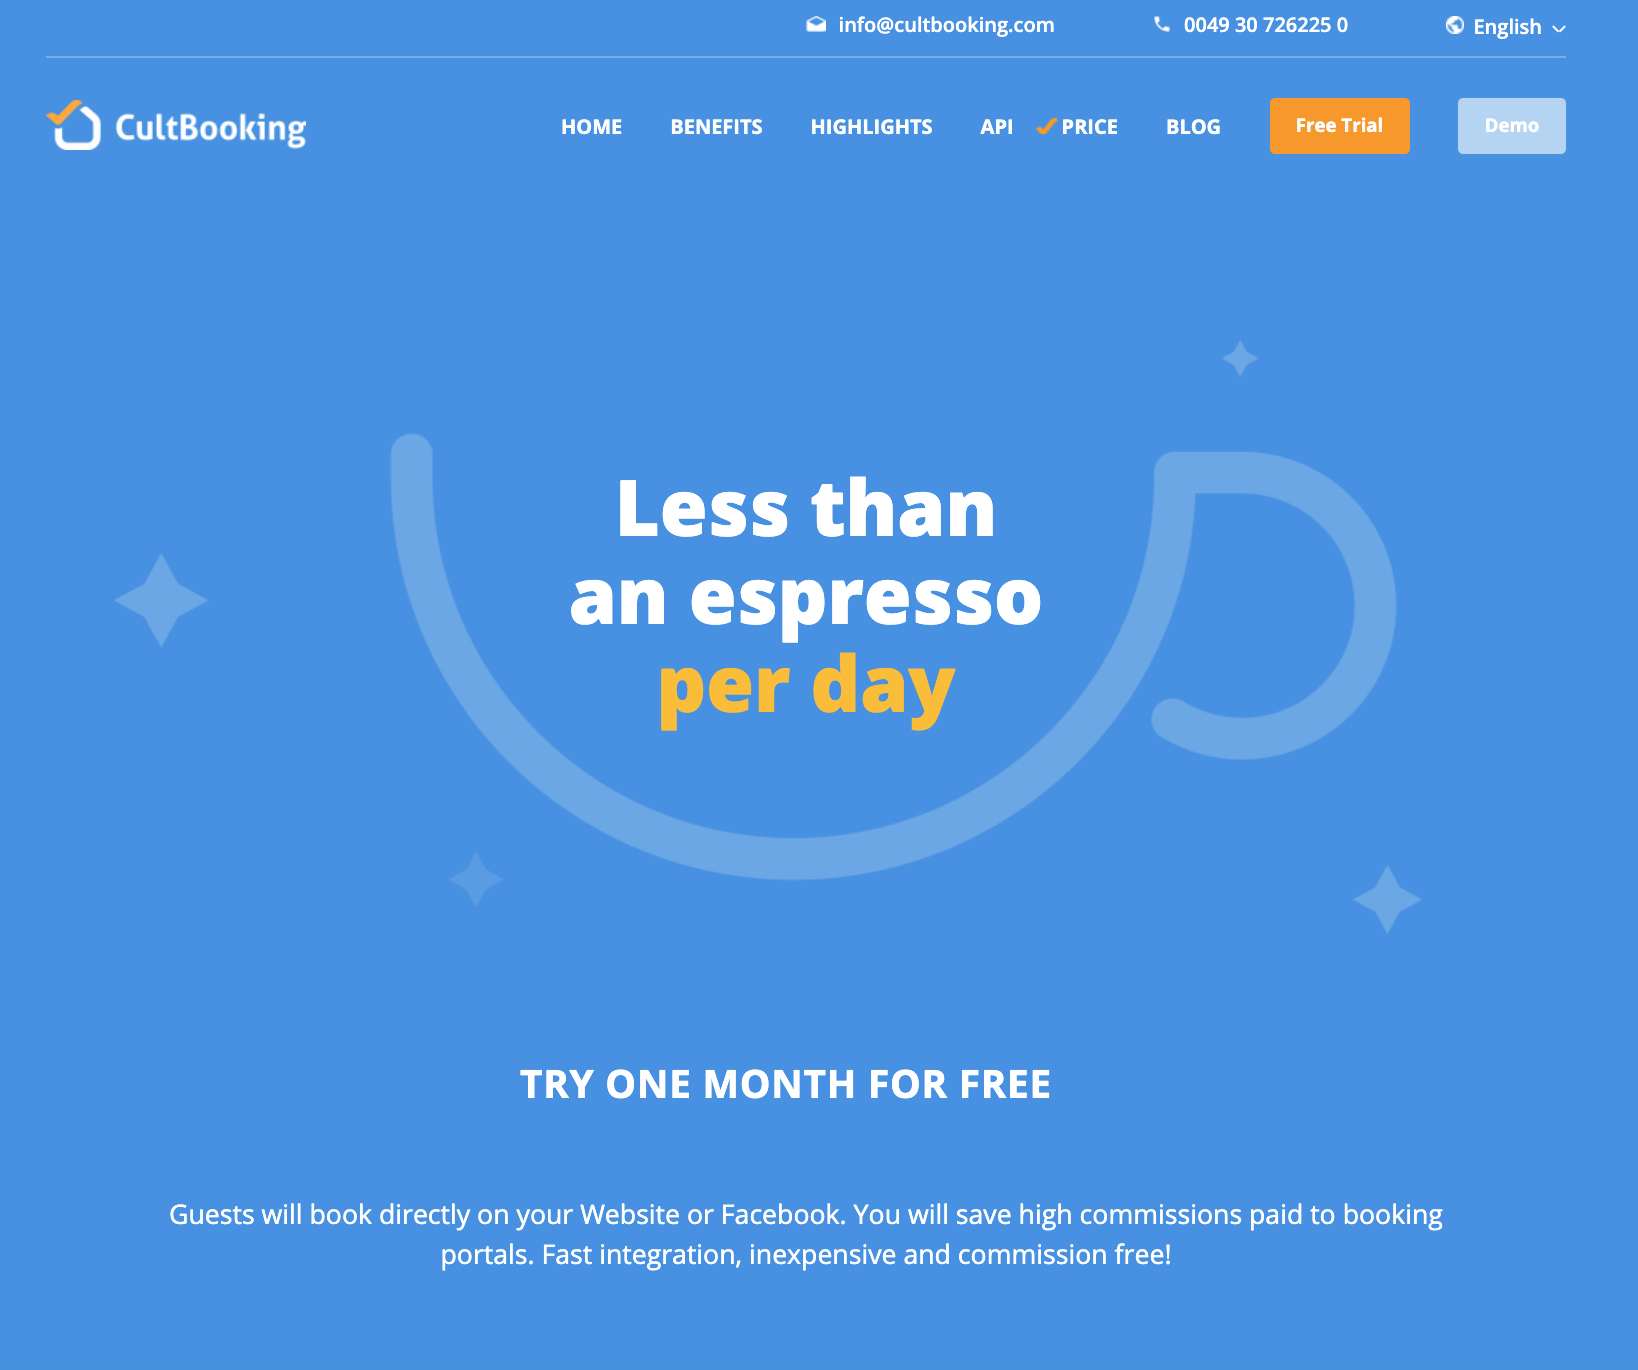 cultbooking price-less than an espresso per day